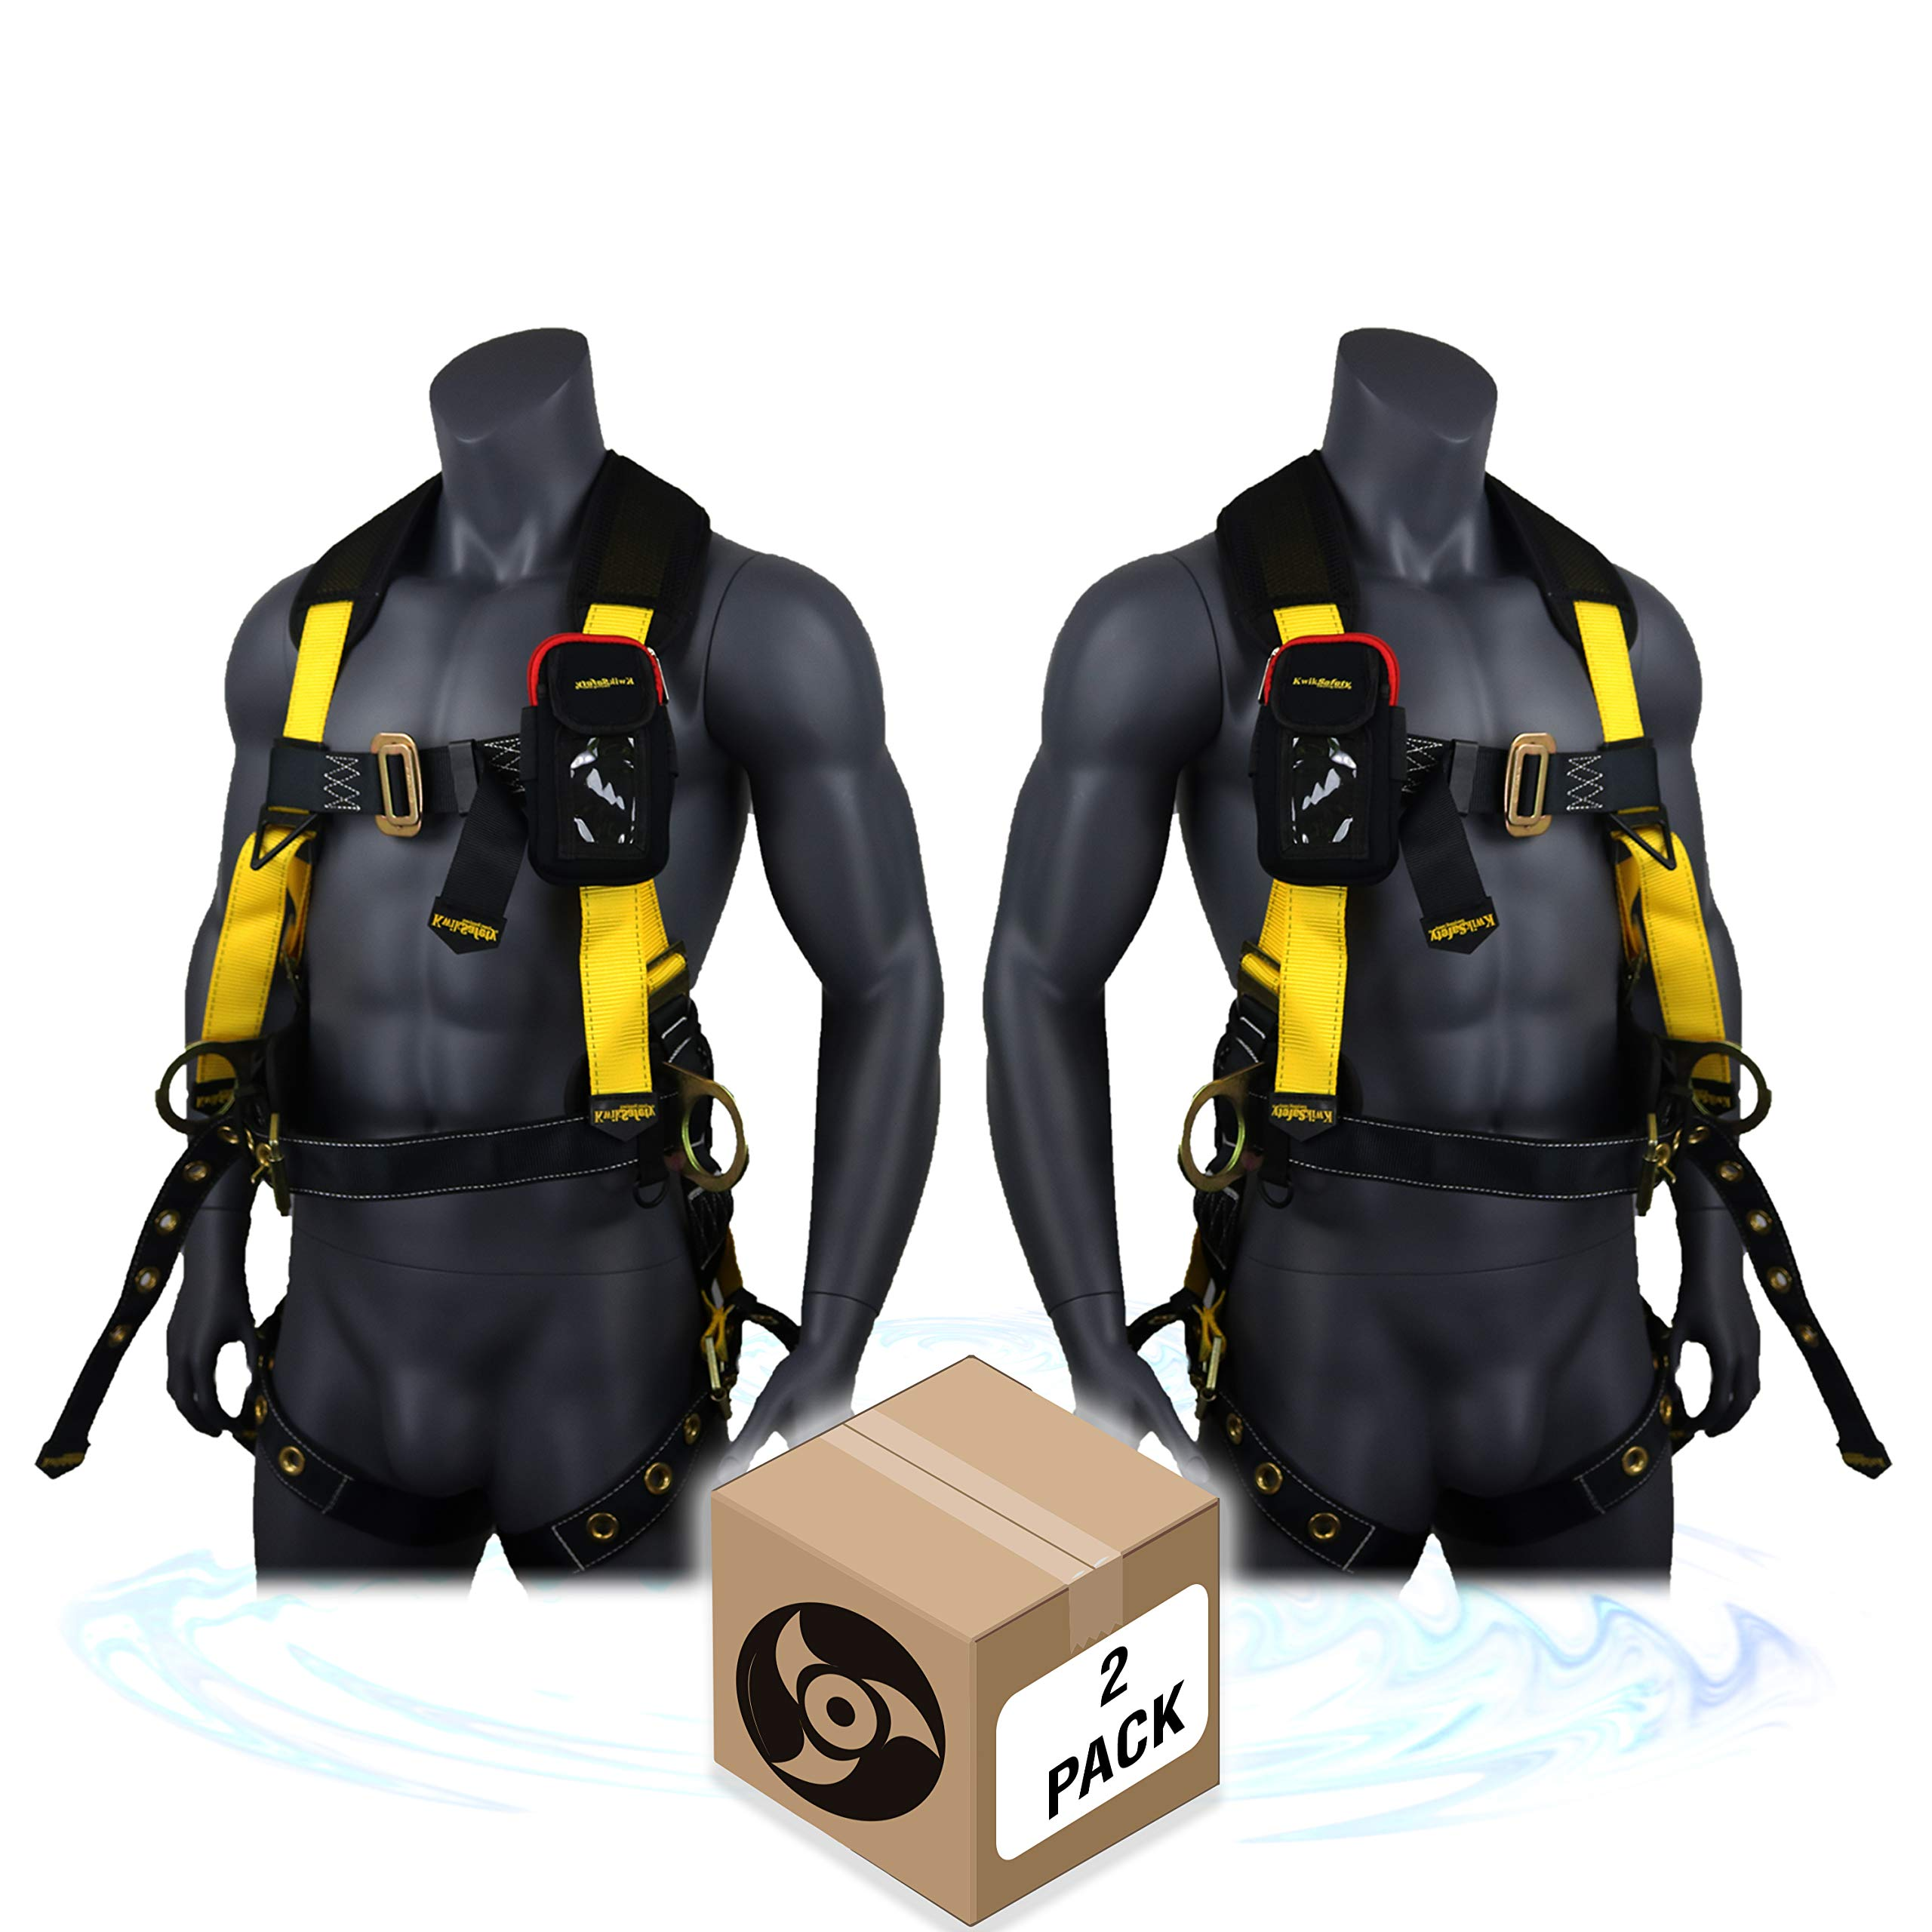 KwikSafety (Charlotte, NC) TYPHOON (2 PACK) ANSI Fall Protection Full Body Safety Harness Personal Protective Equipment Dorsal Ring Side D-Rings Grommet Leg Straps Tool Lanyard Bolt Pouch Construction by KwikSafety